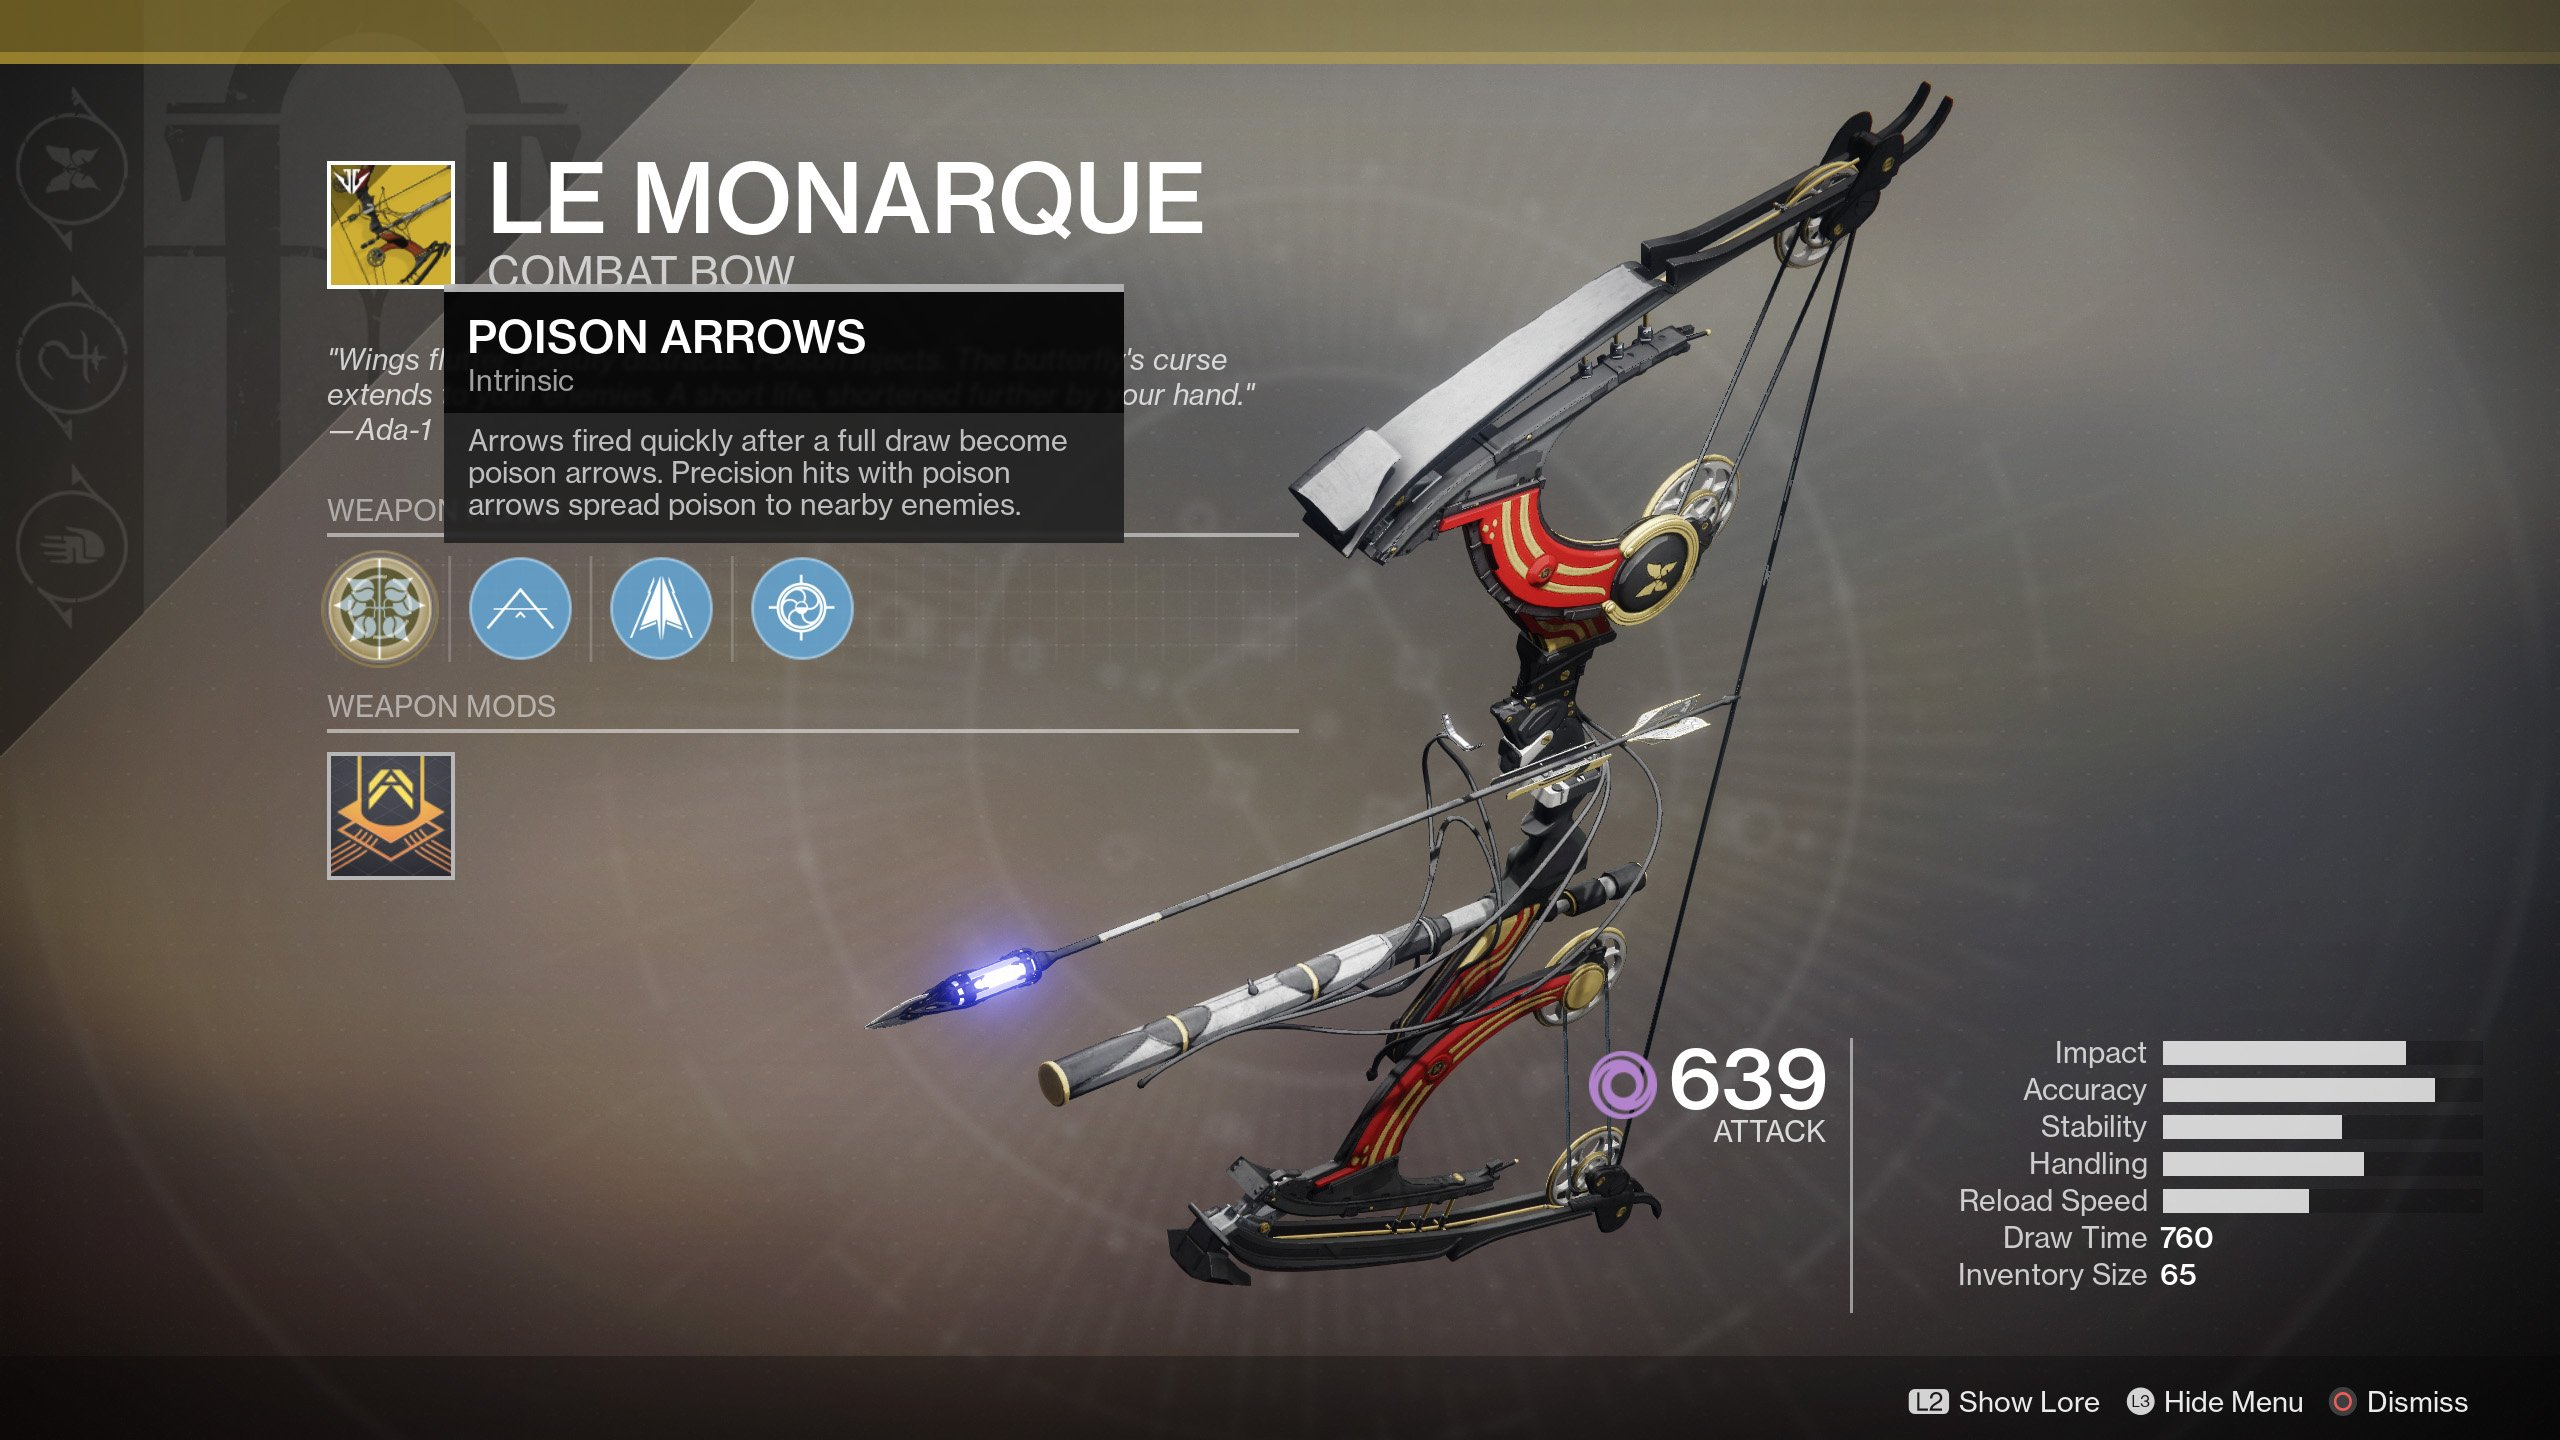 How to get Le Monarque Exotic Bow Destiny 2